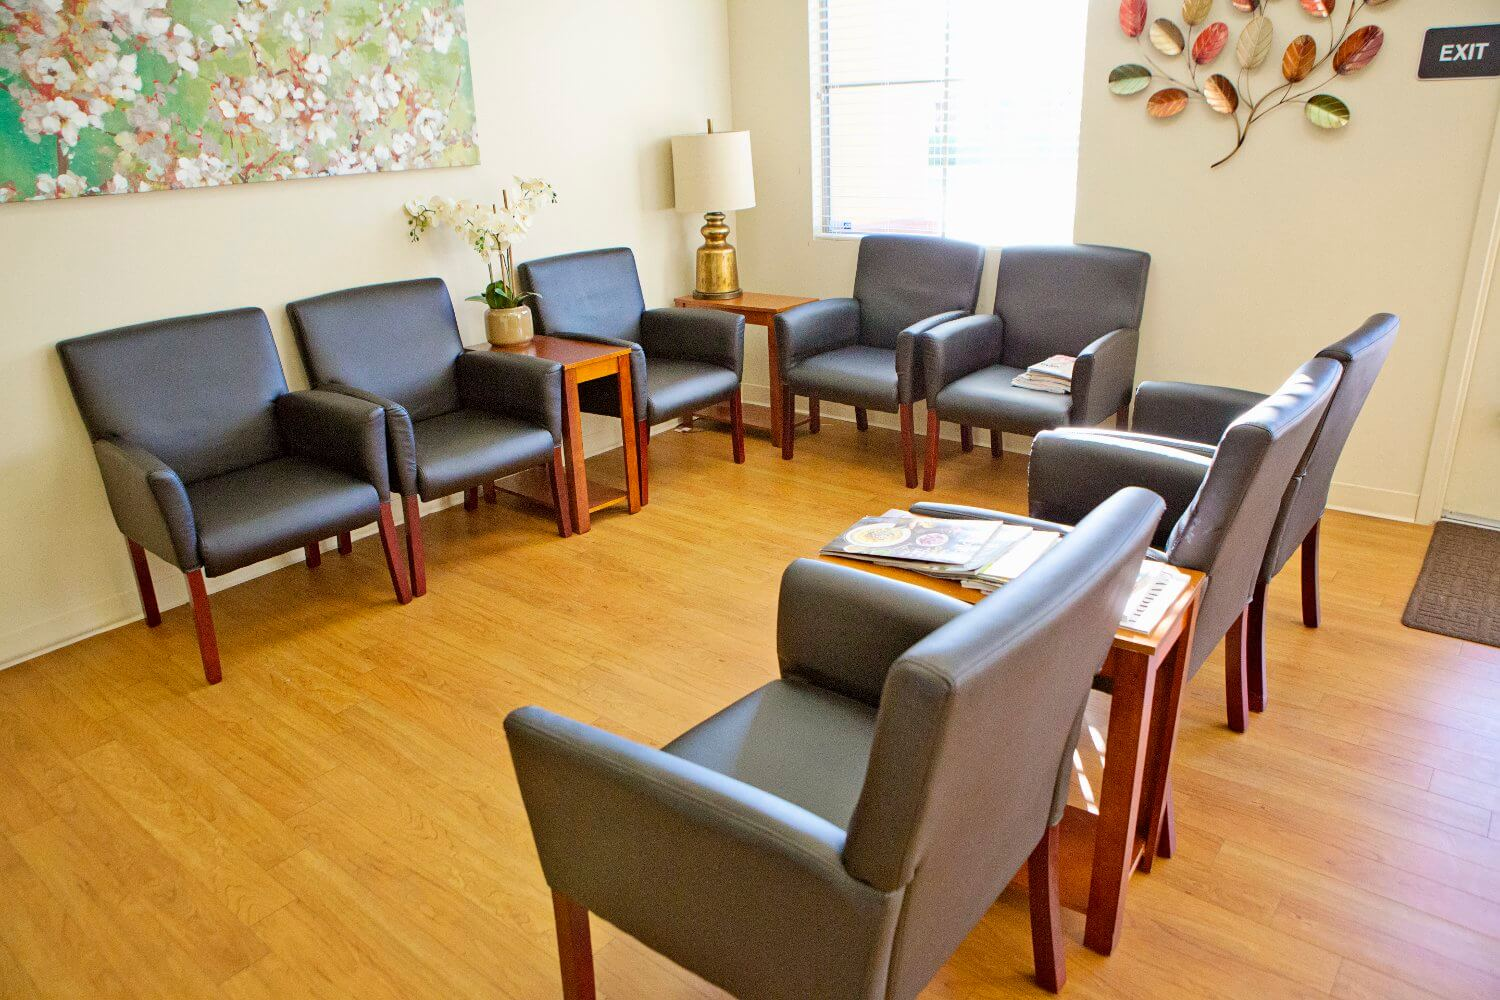 Dr. Norma Perales Chandler Waiting Room